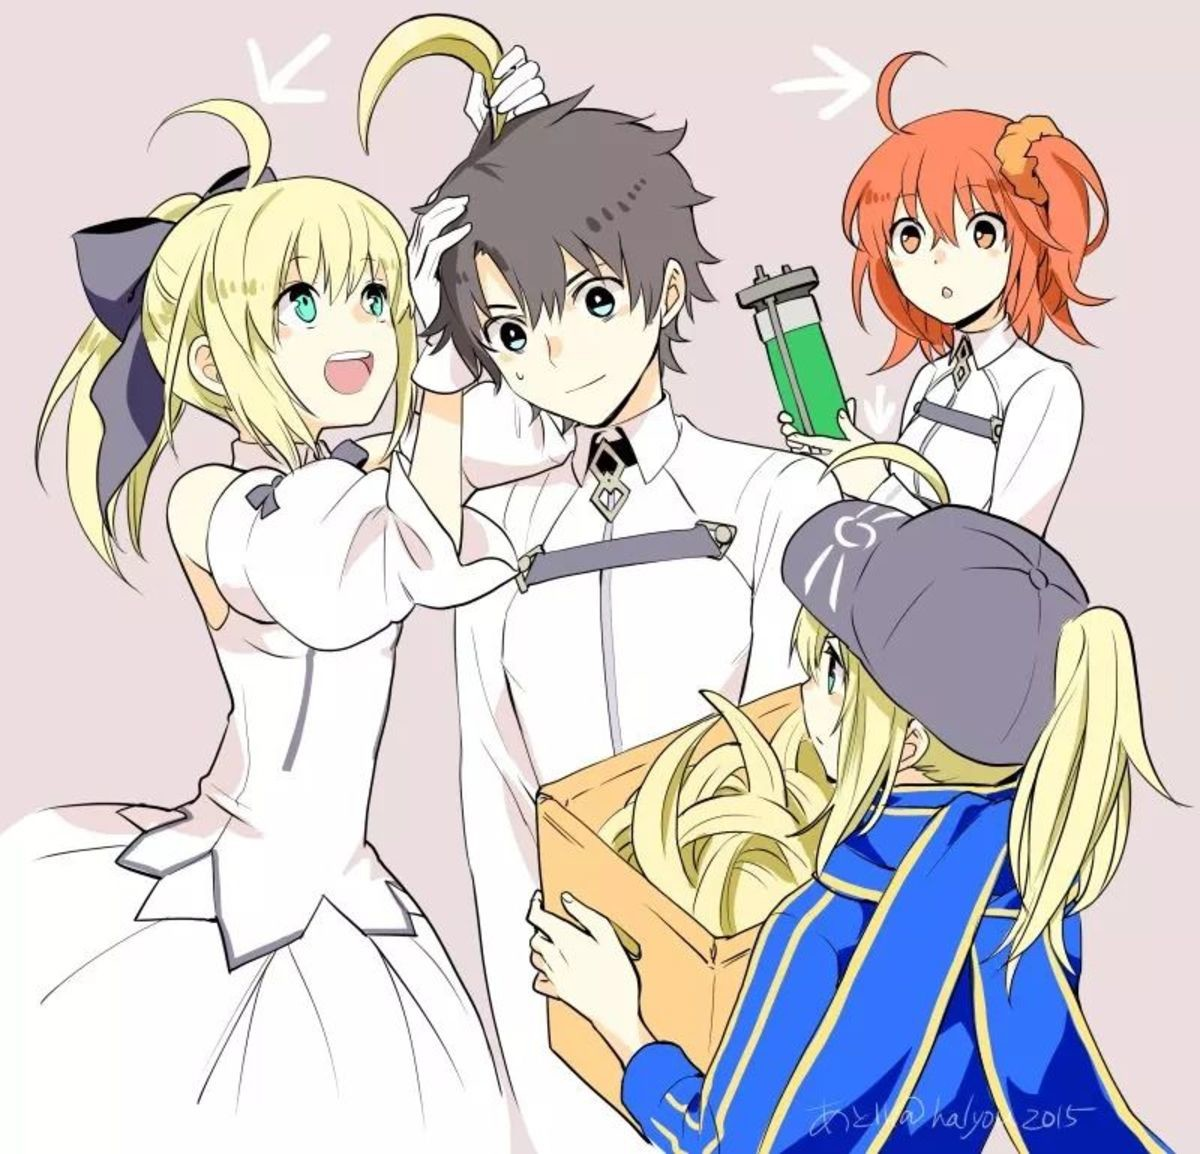 AHOGE TRANSFER. join list: SmolHol (1464 subs)Mention History join list:. One of us